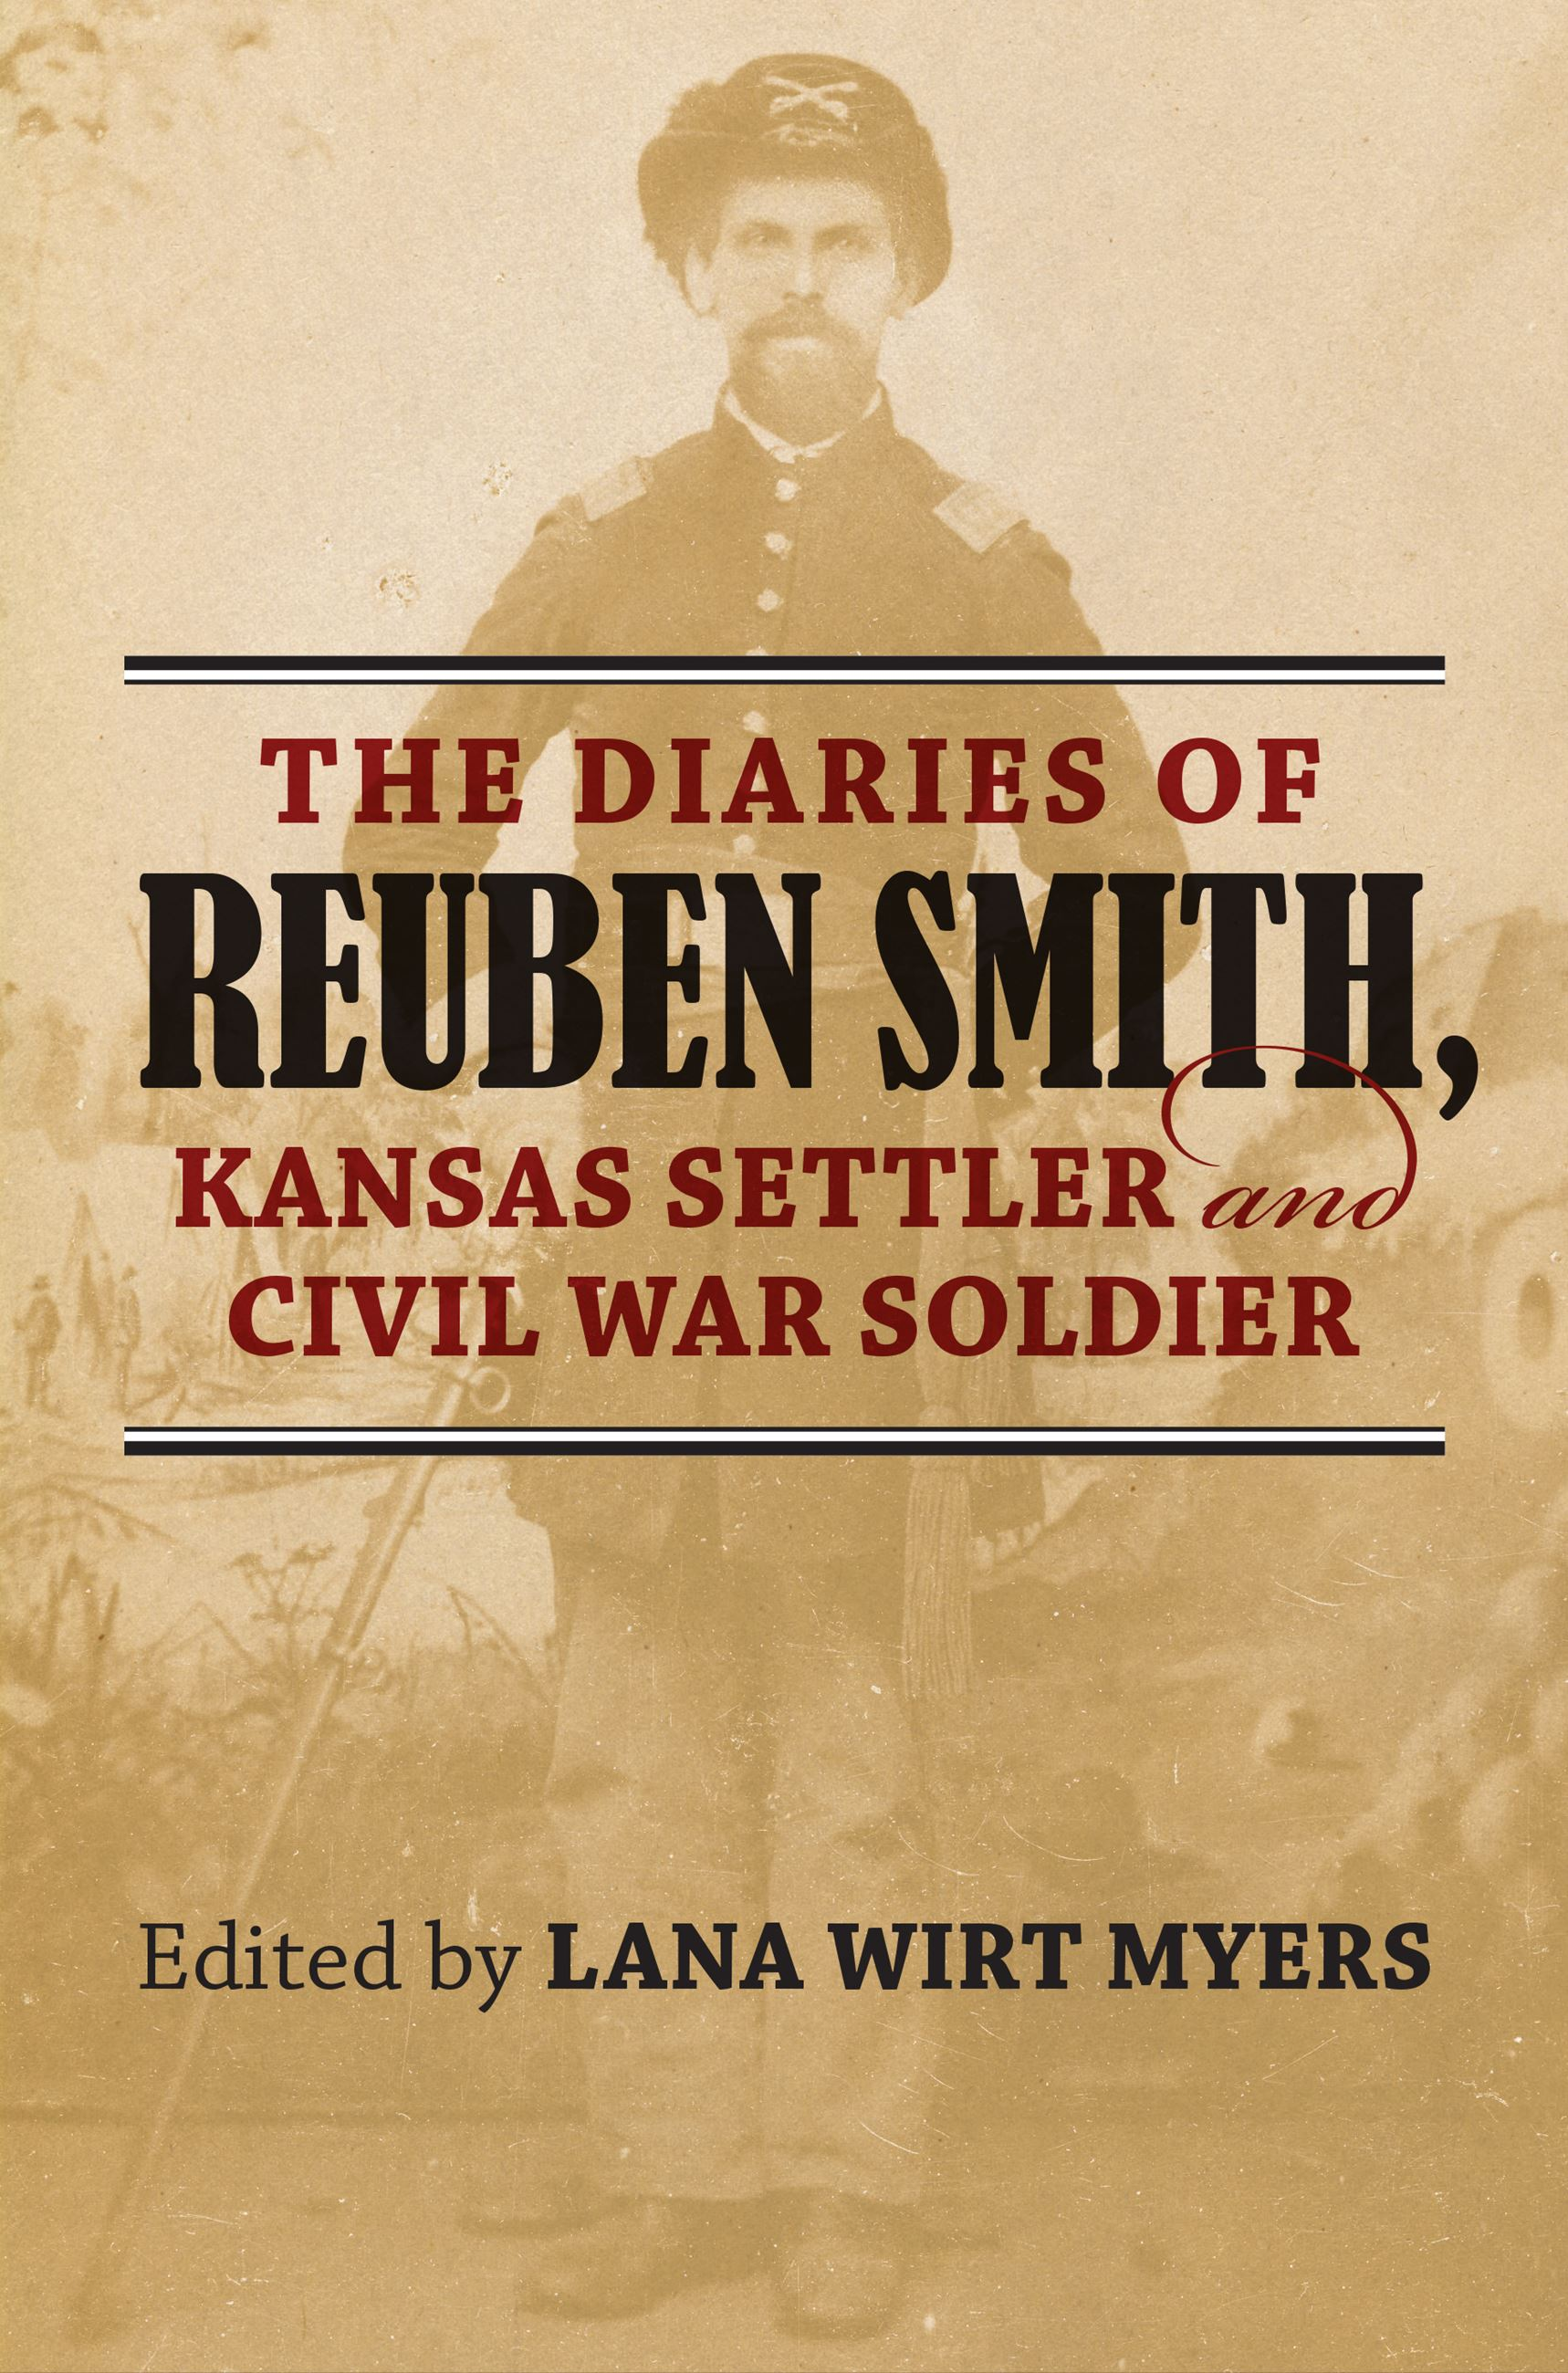 cover art for the book The Diaries of Reuben Smith